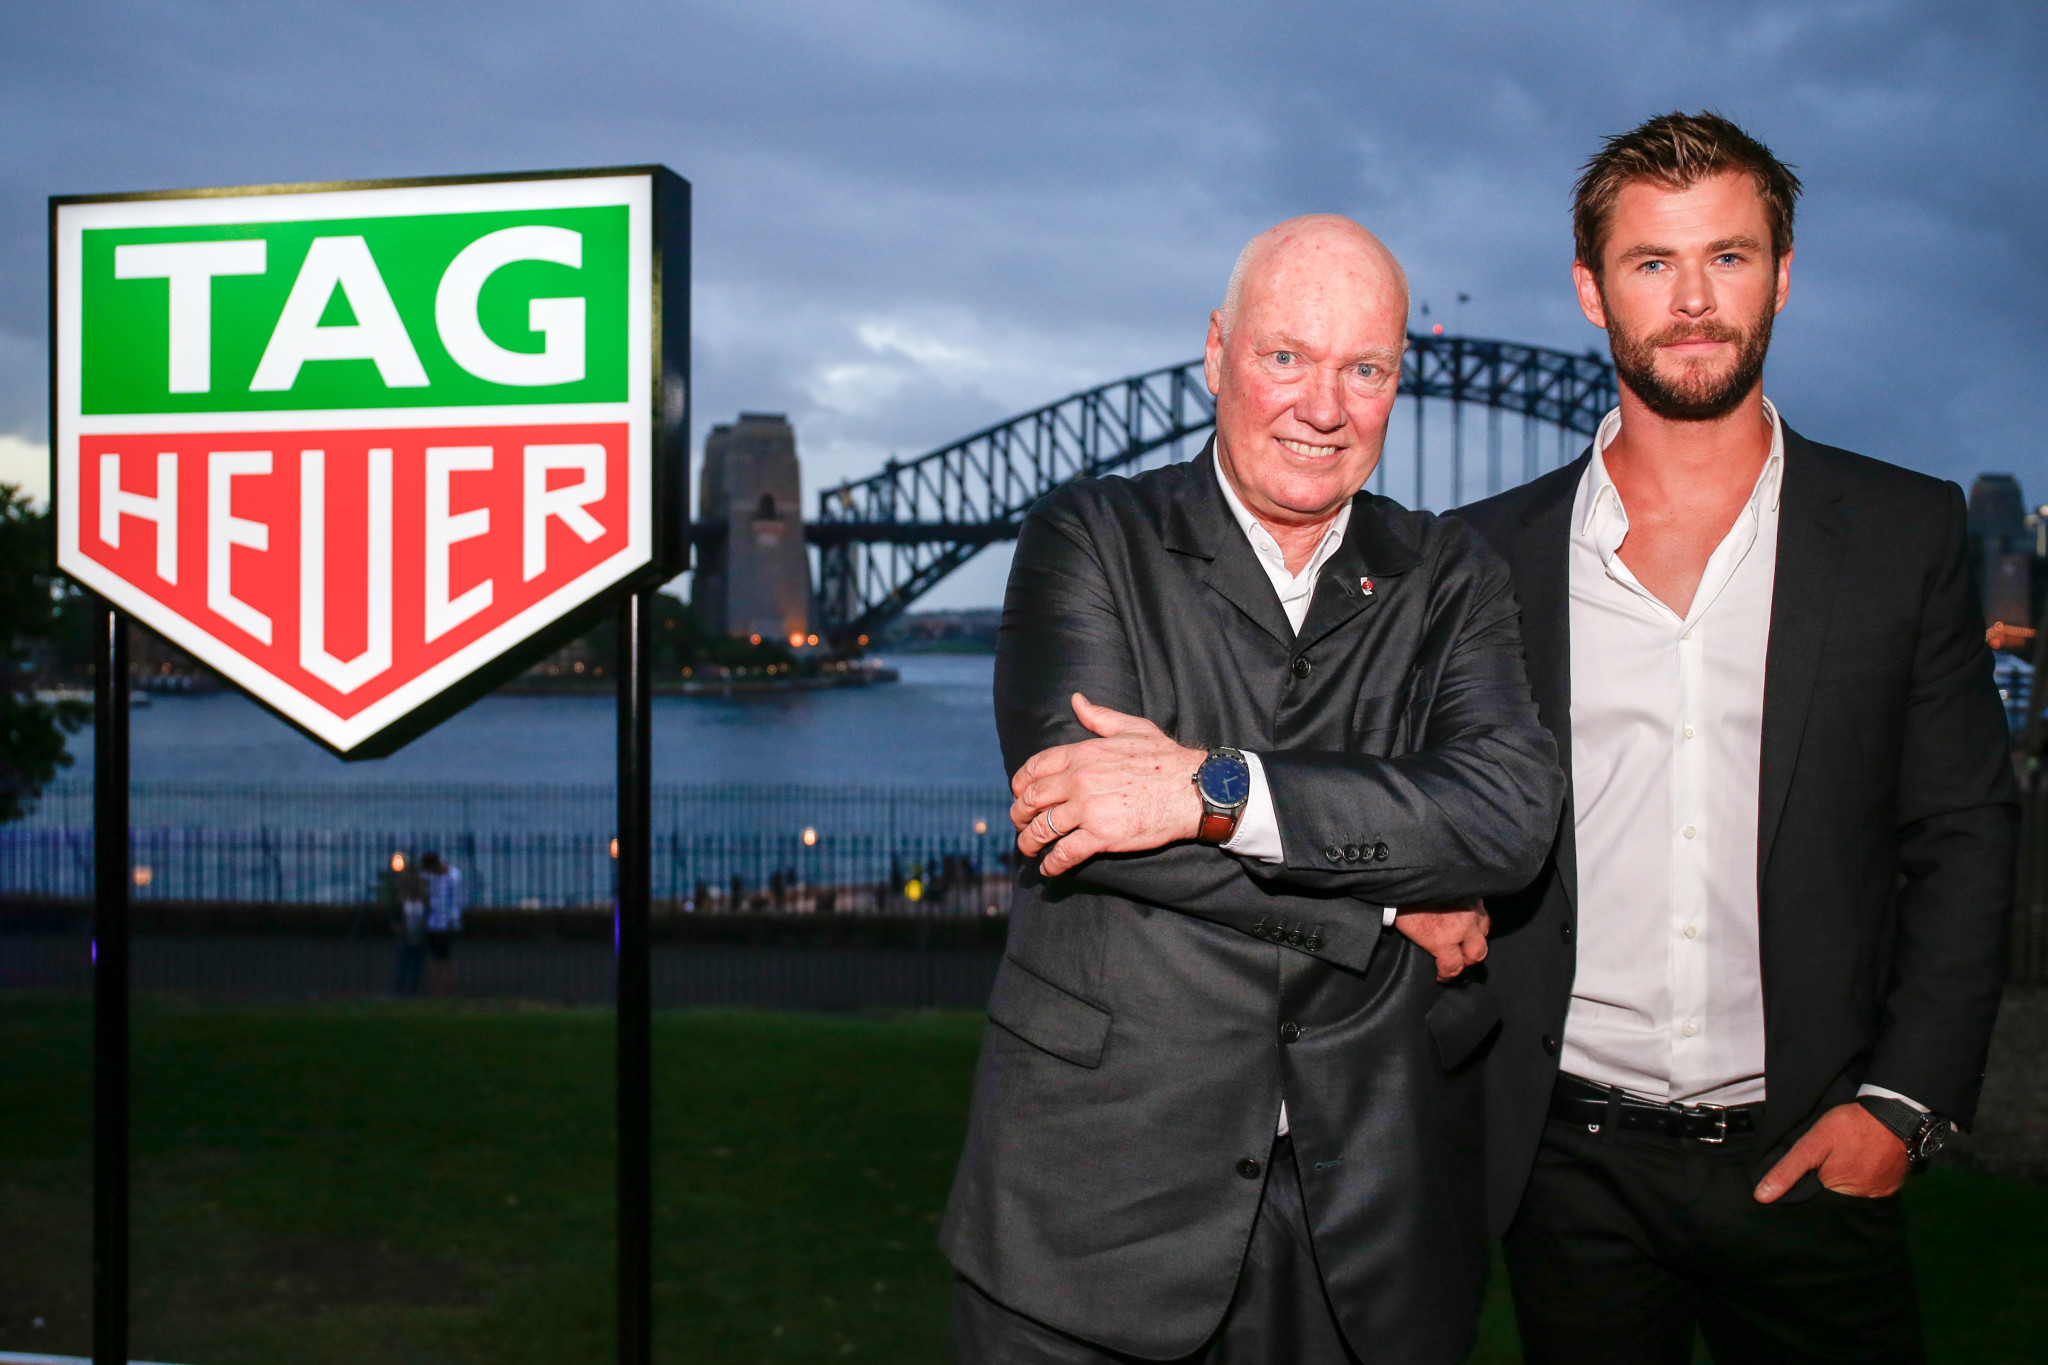 Tag Heuer & Chris Hemsworth in Australia 04.02.2016 (18)